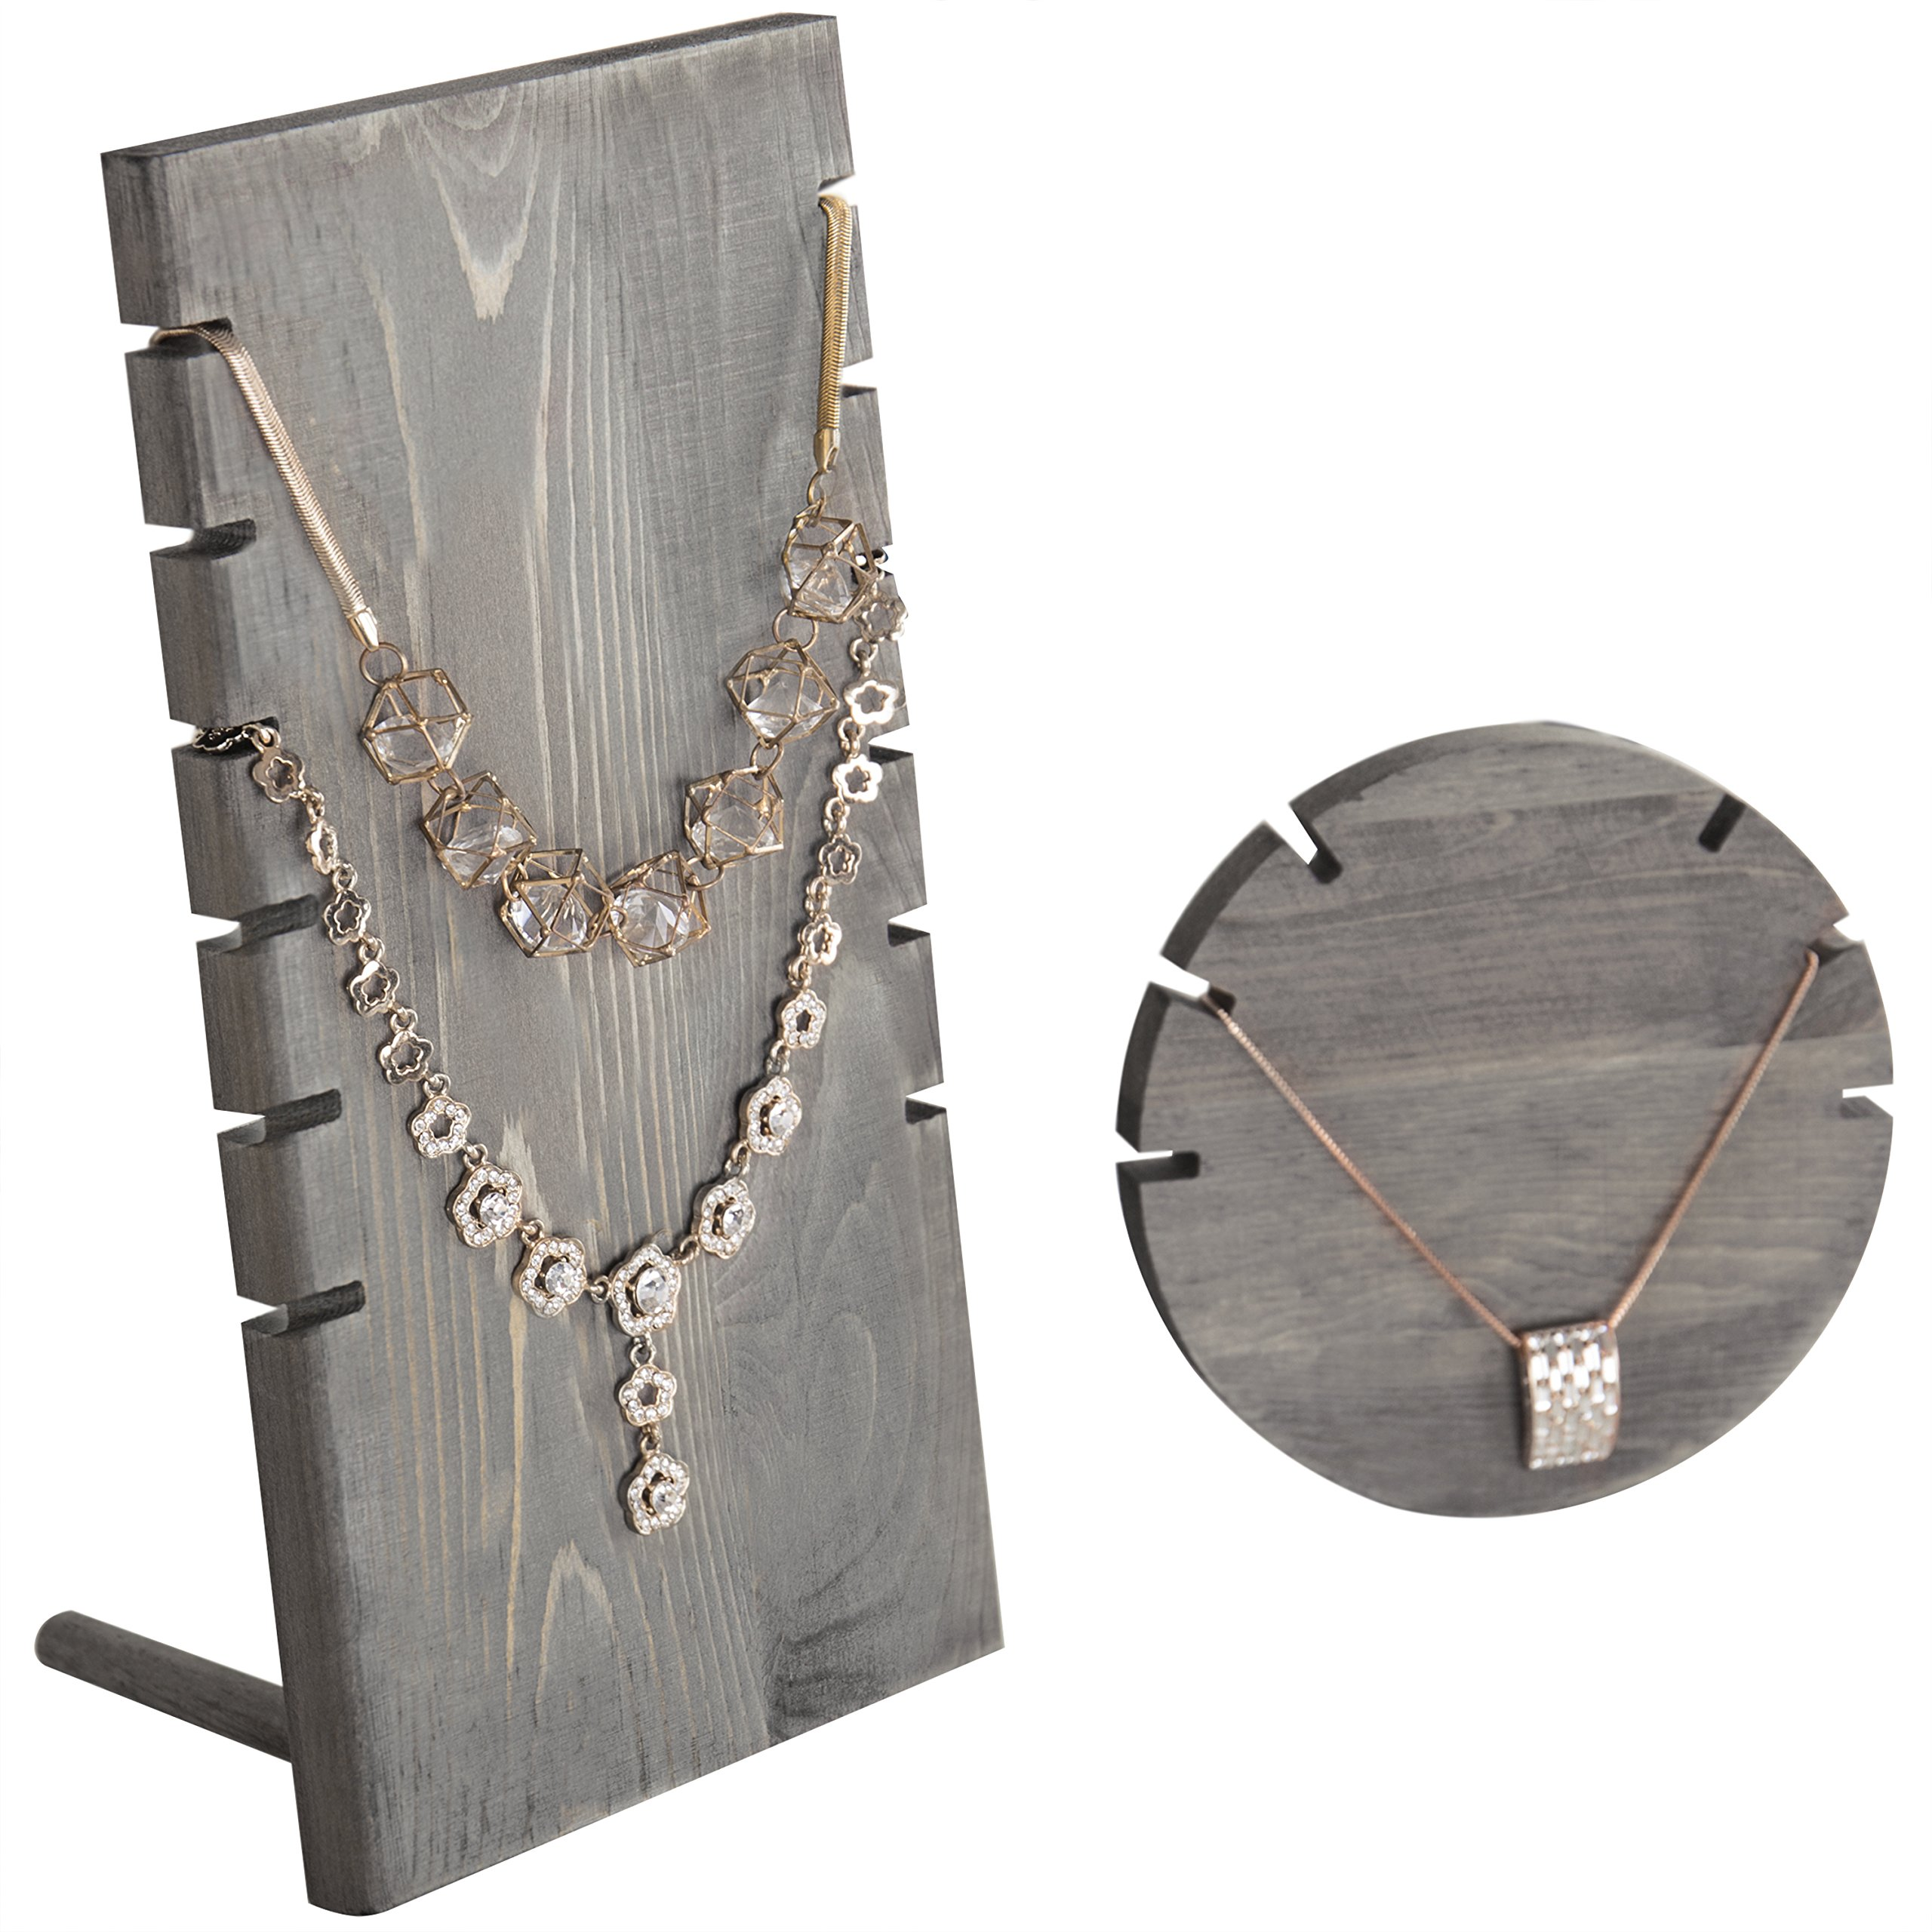 MyGift Set of 2 Wood Plank & Disc Necklace Display Stands, Gray